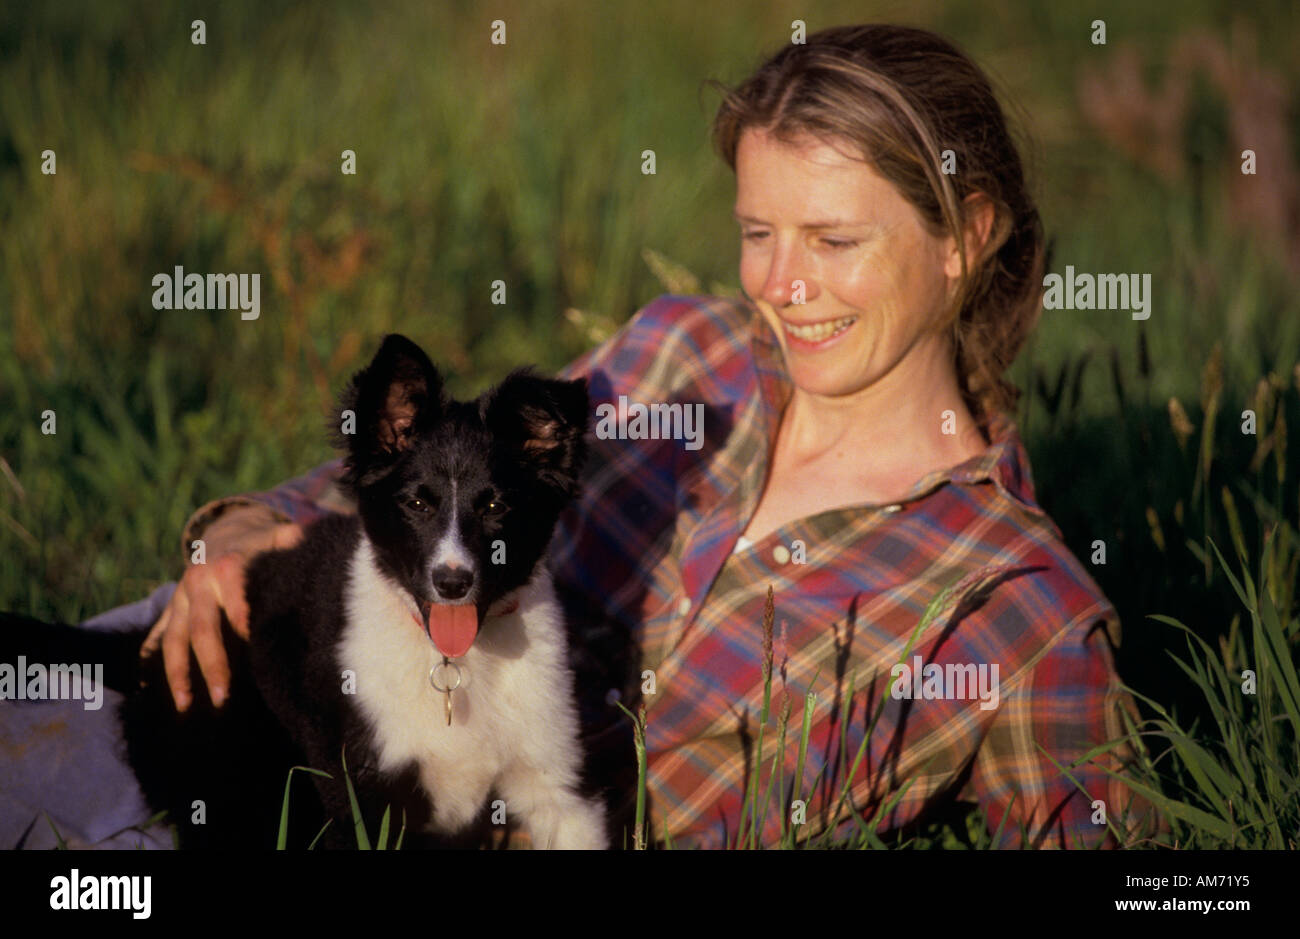 Woman Hugging Border Collie Stock Photos & Woman Hugging Border